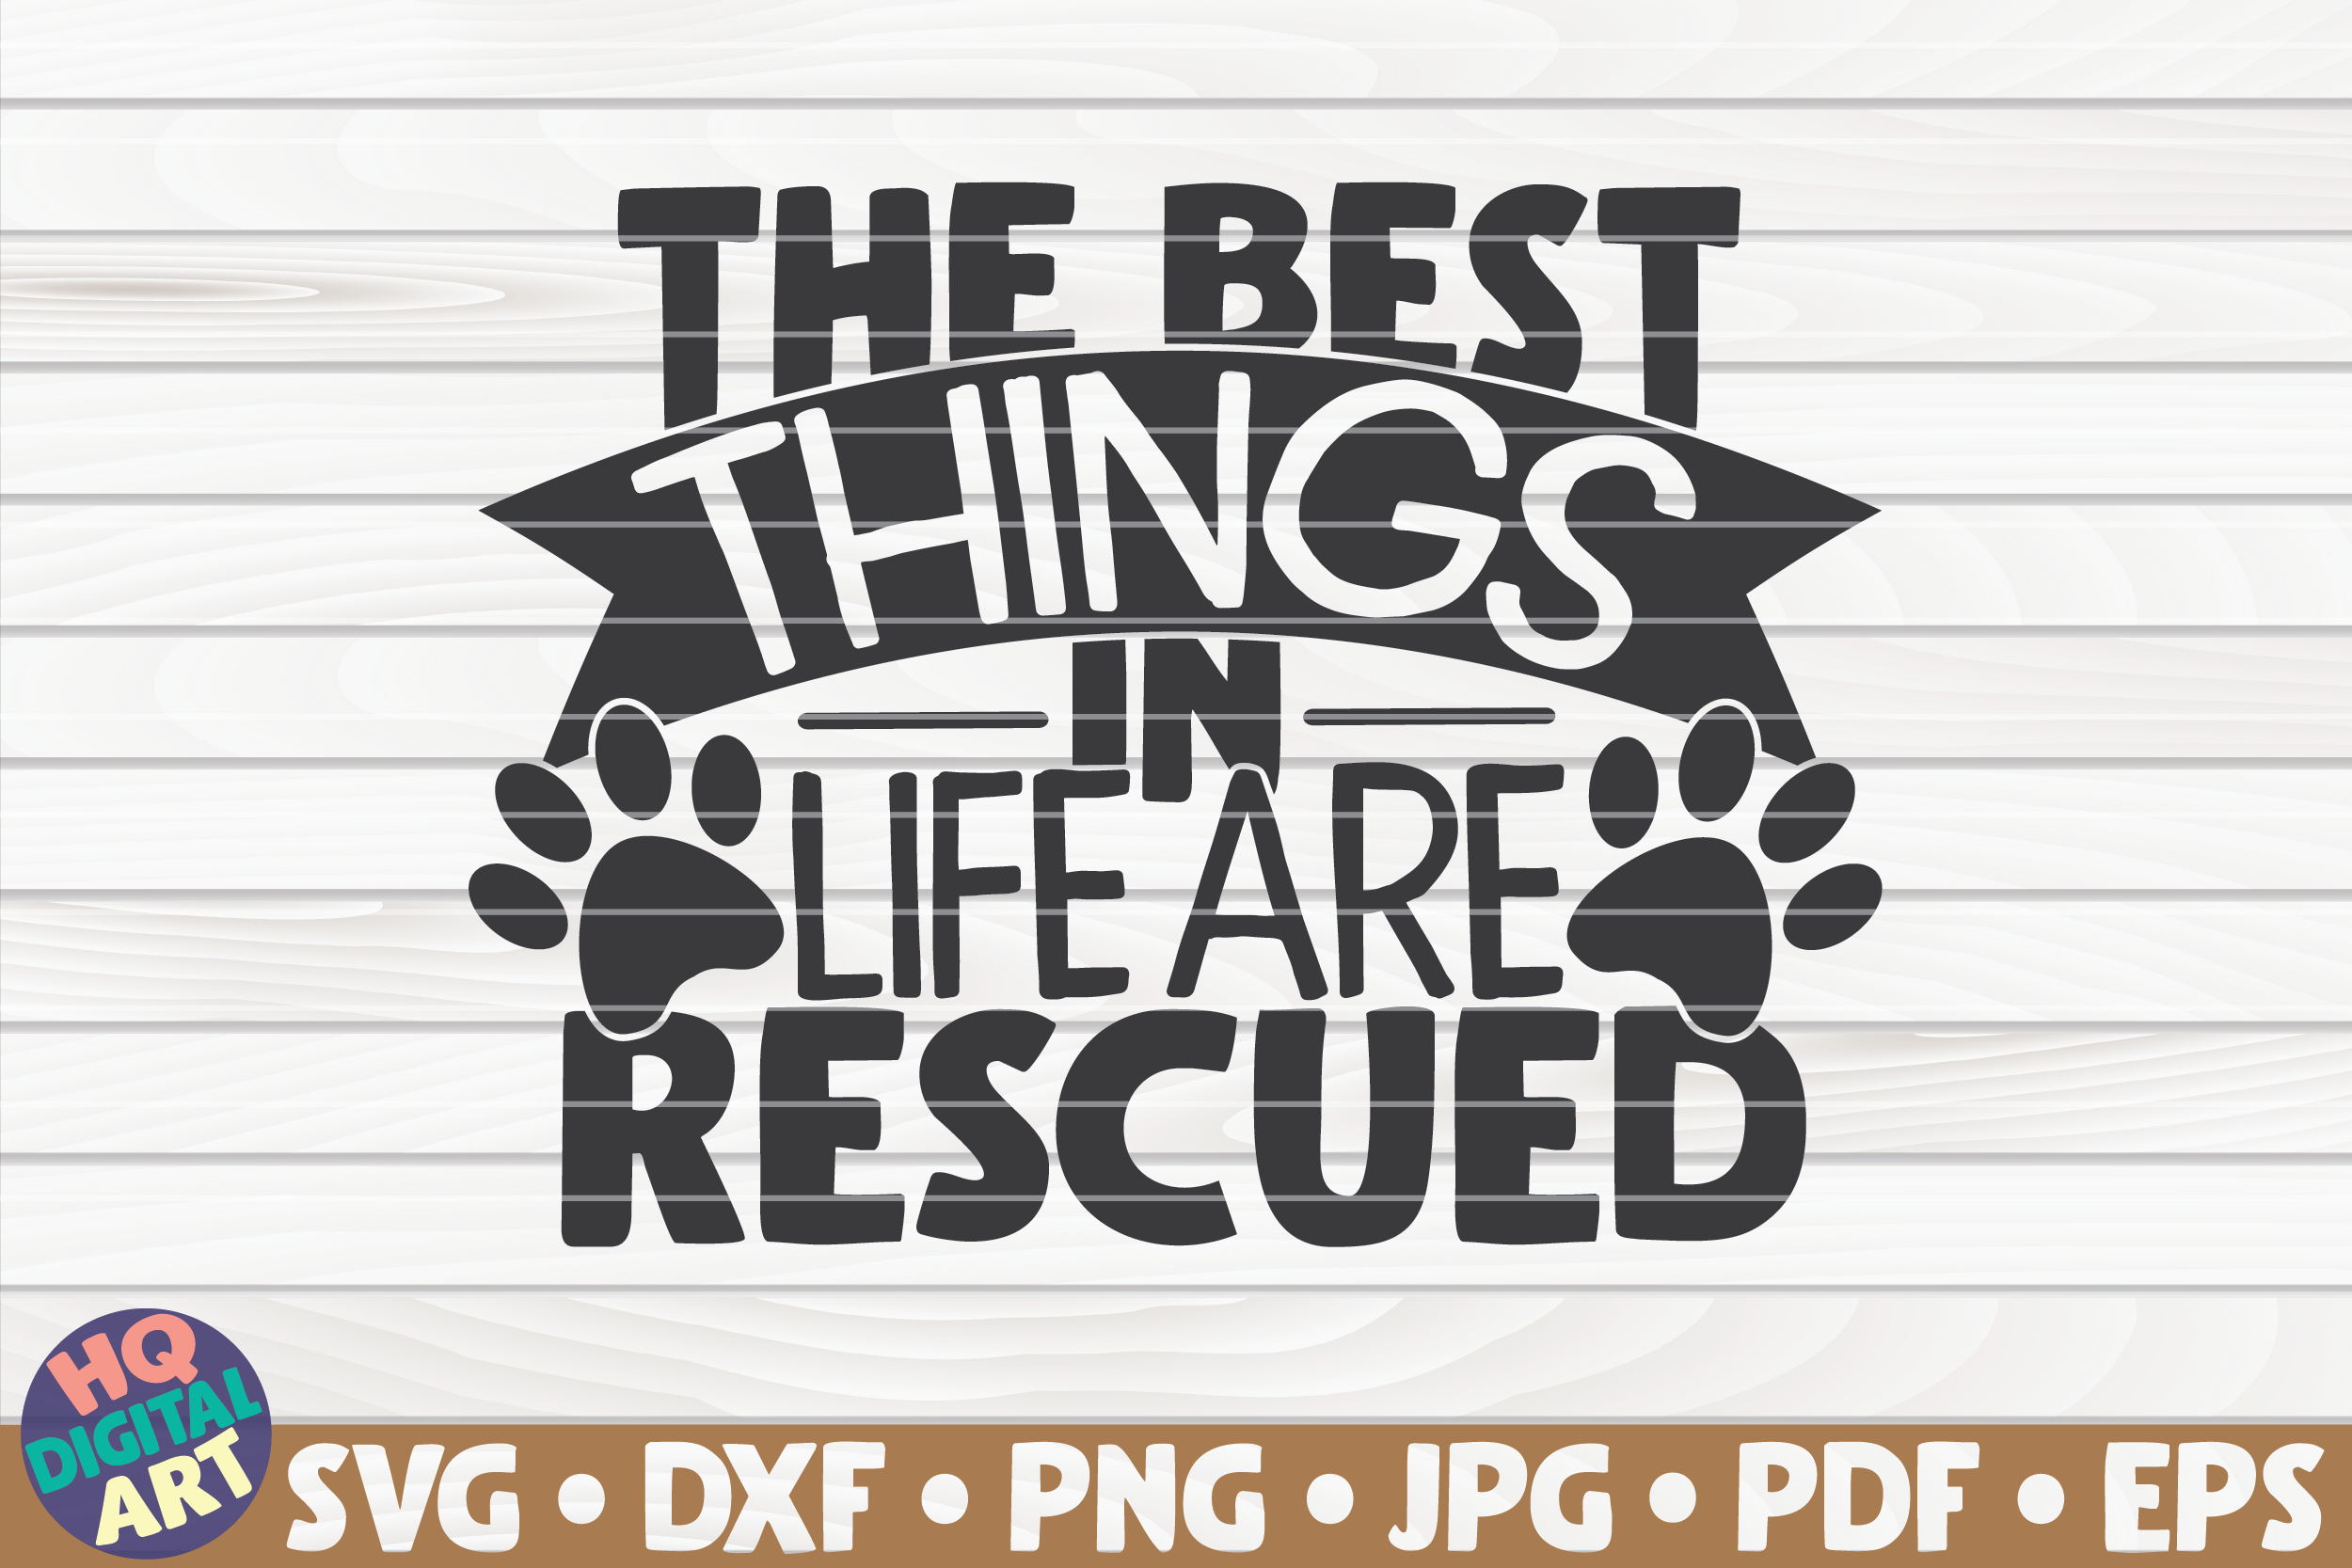 Download Free The Best Things In Life Are Rescued Graphic By Mihaibadea95 for Cricut Explore, Silhouette and other cutting machines.